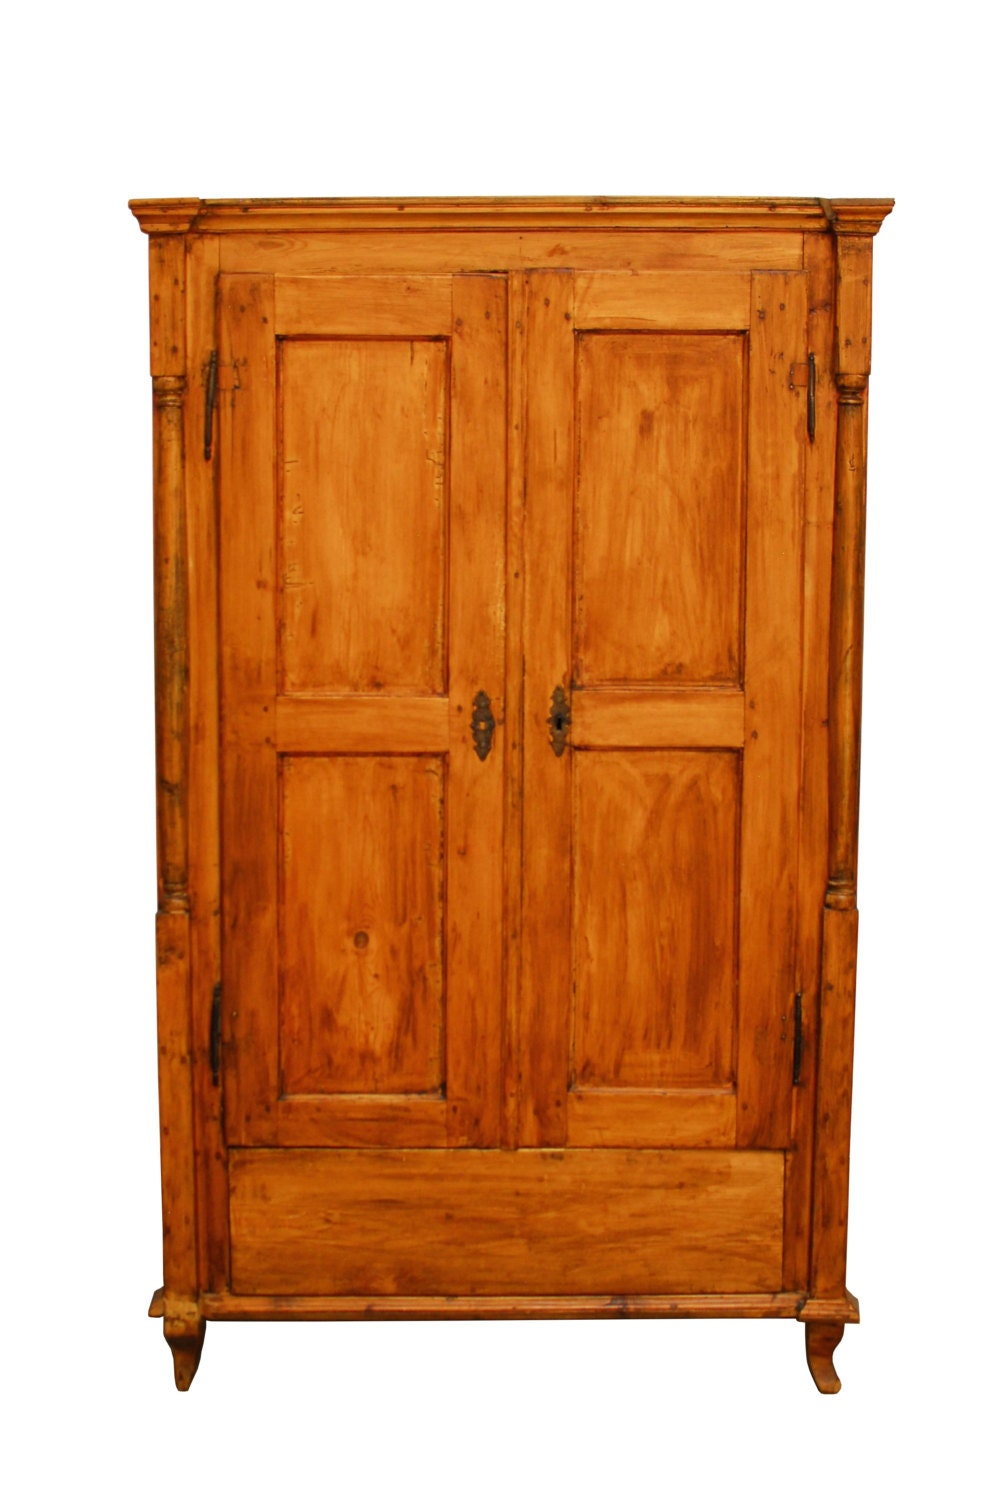 19th century french pine armoire haute juice. Black Bedroom Furniture Sets. Home Design Ideas